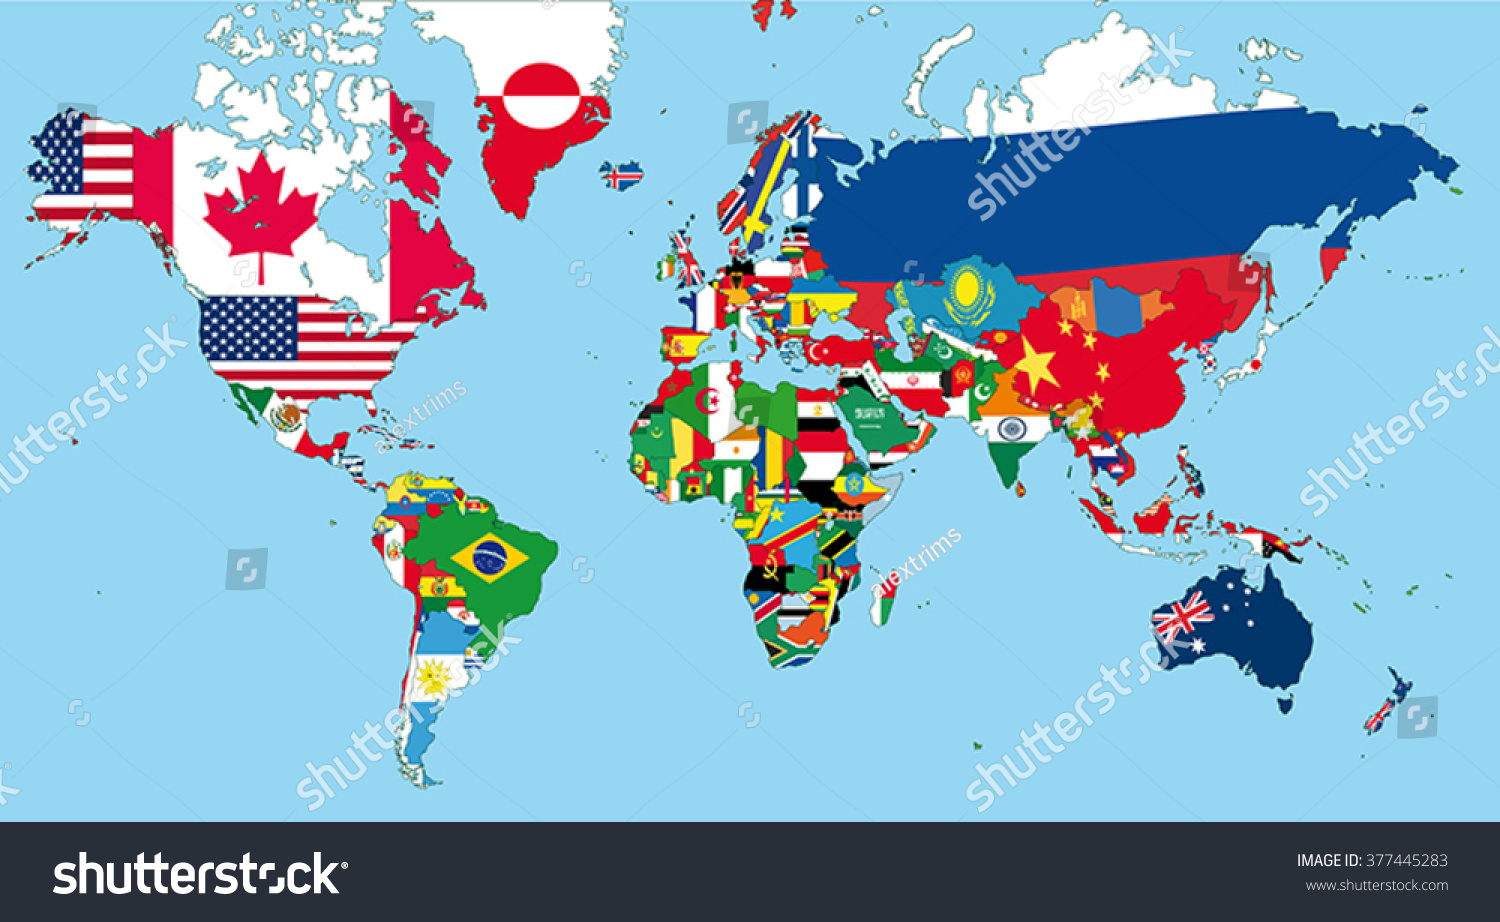 World map all states their flags vectores en stock 377445283 the world map with all states and their flags gumiabroncs Choice Image